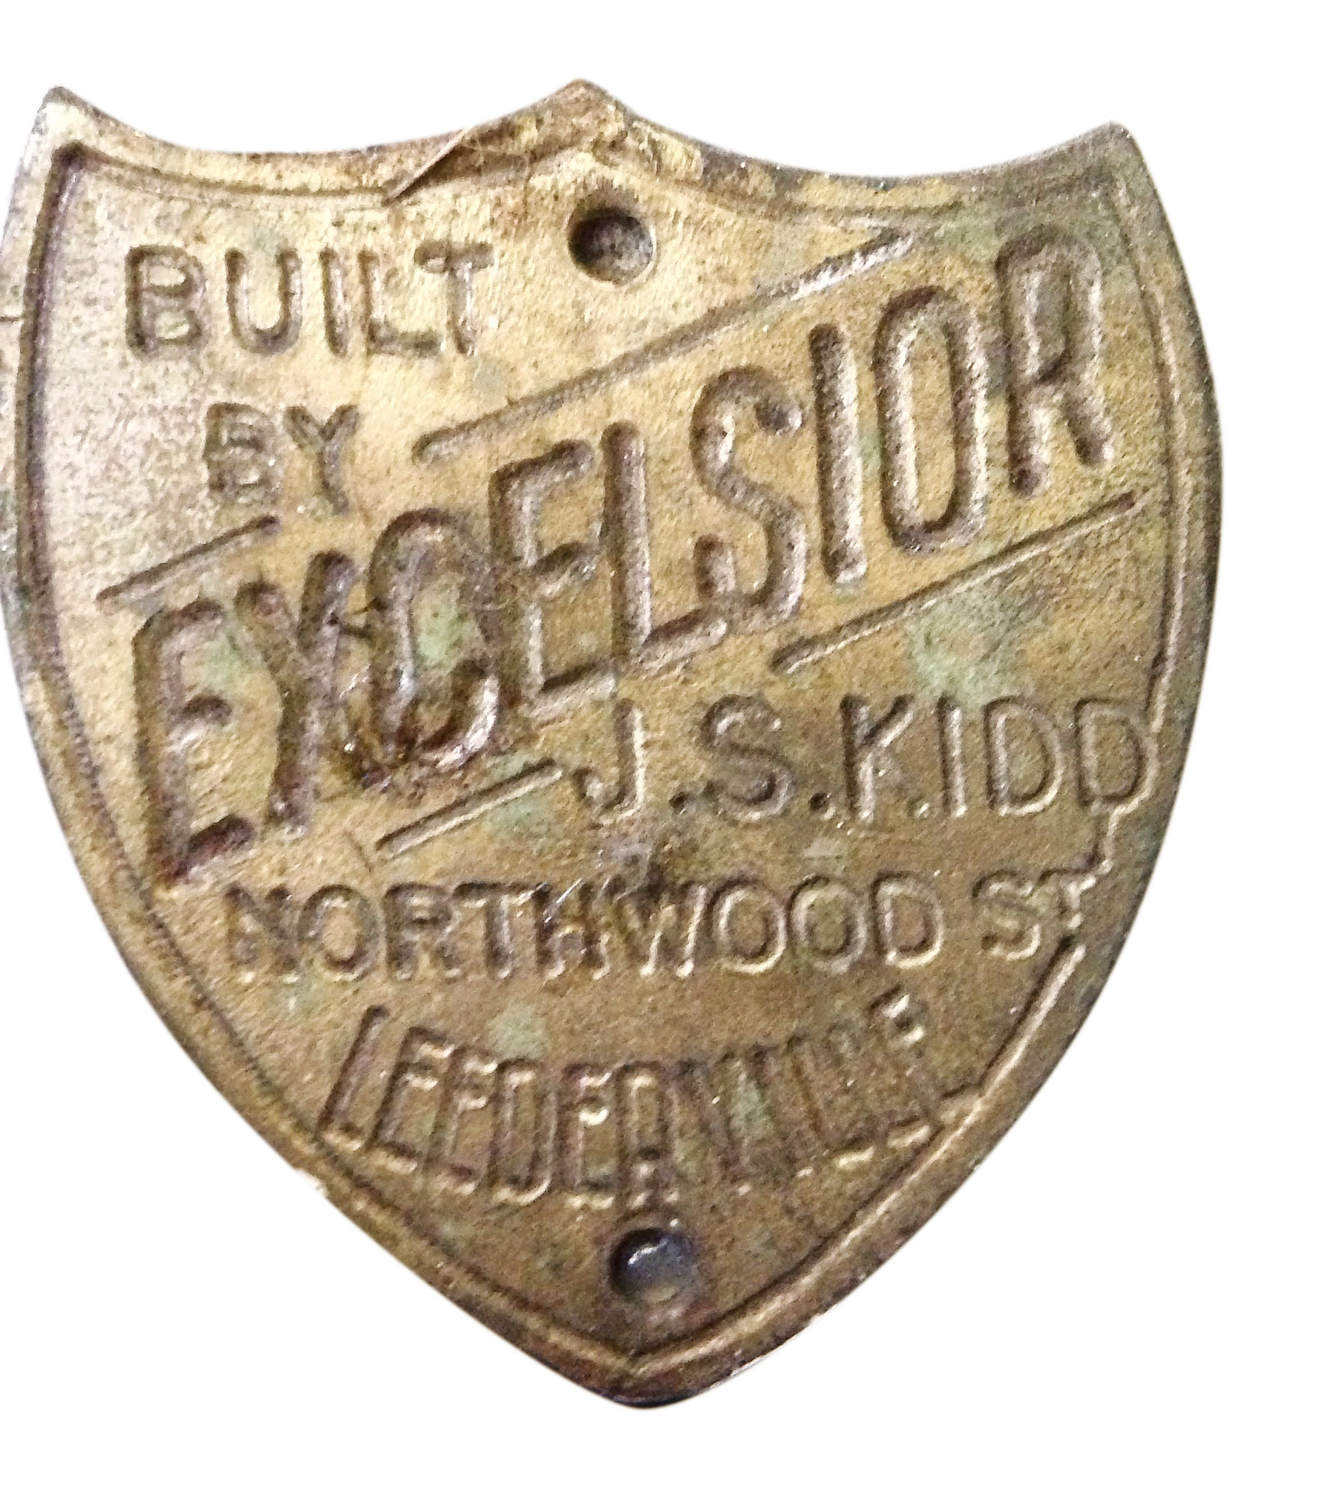 ExcelsiorBadge_lores.jpg